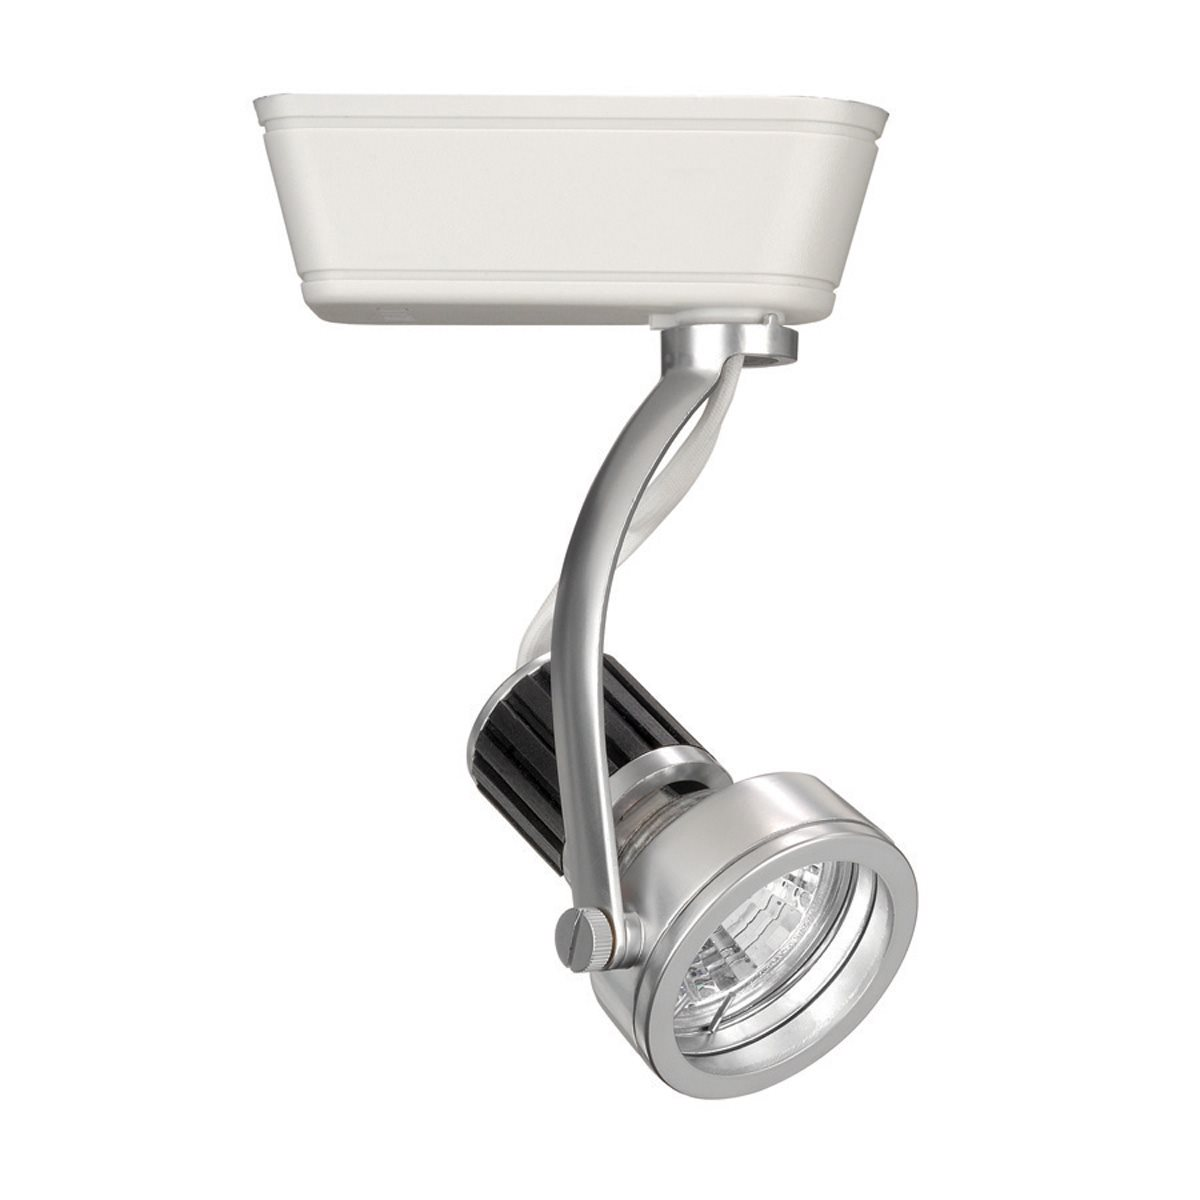 Laredo Premium Low Voltage Track Light Fixture